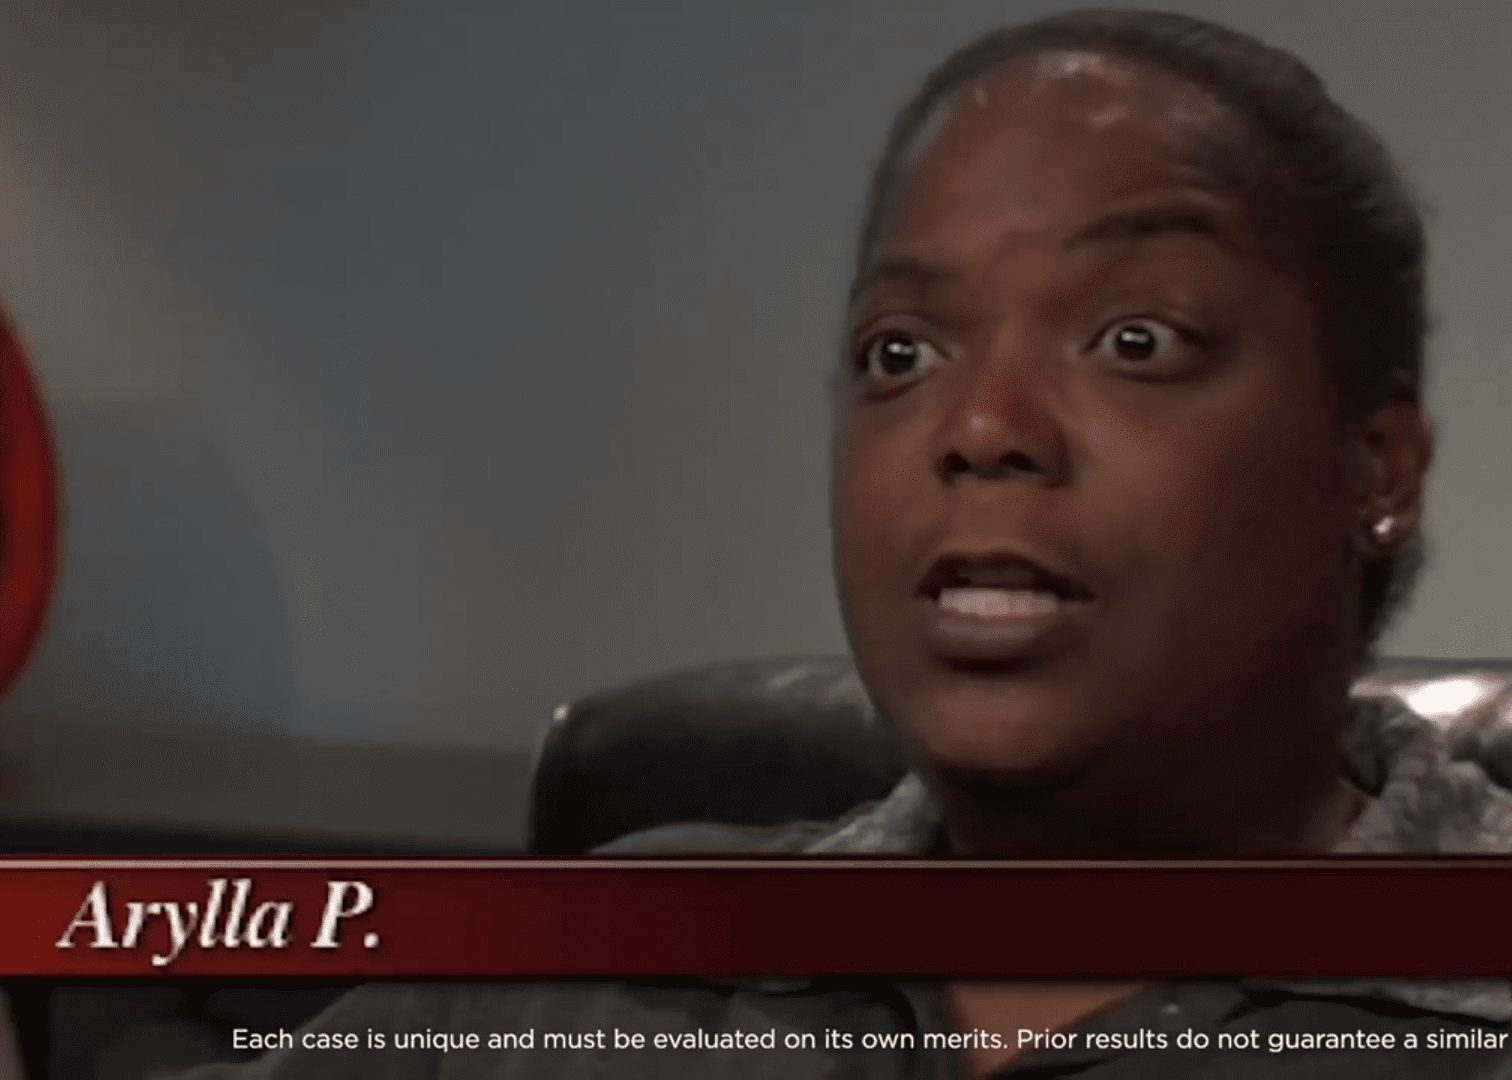 Arylla P. talking about her accident